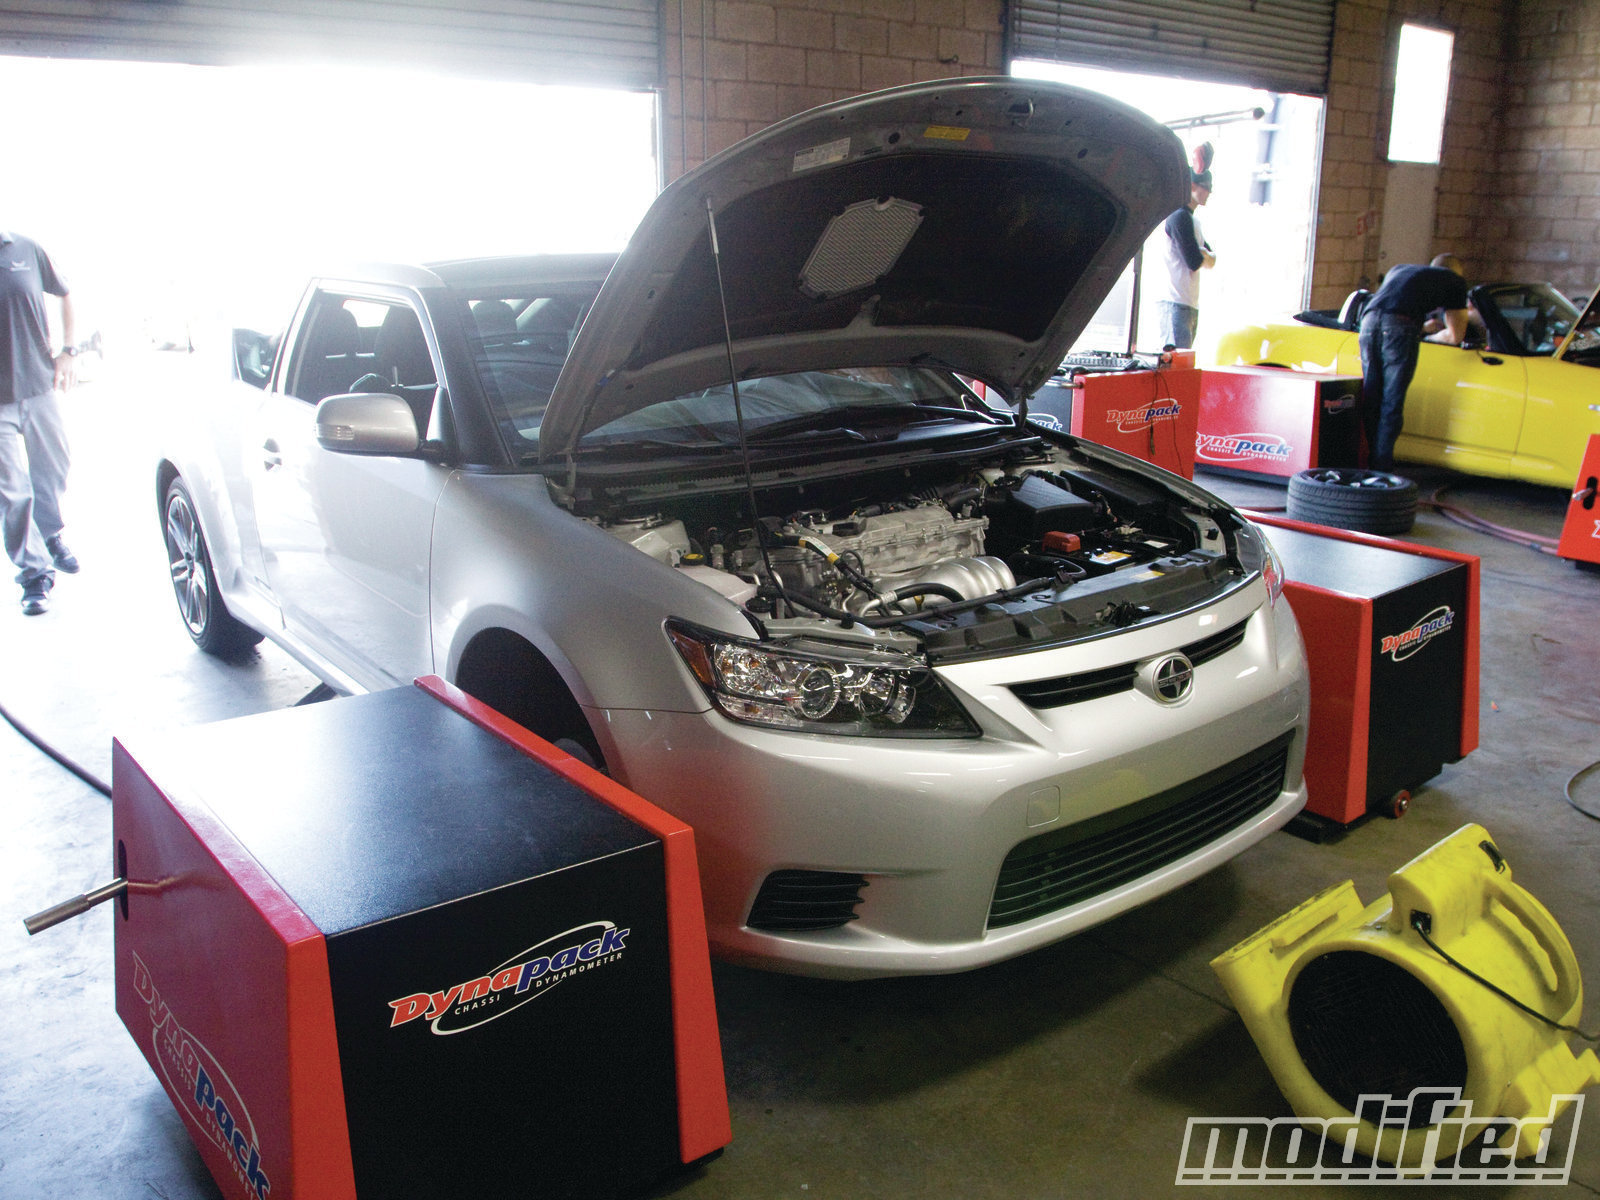 Fits Scion TC 2011-13 by Torque Solution Exhaust Mount kit